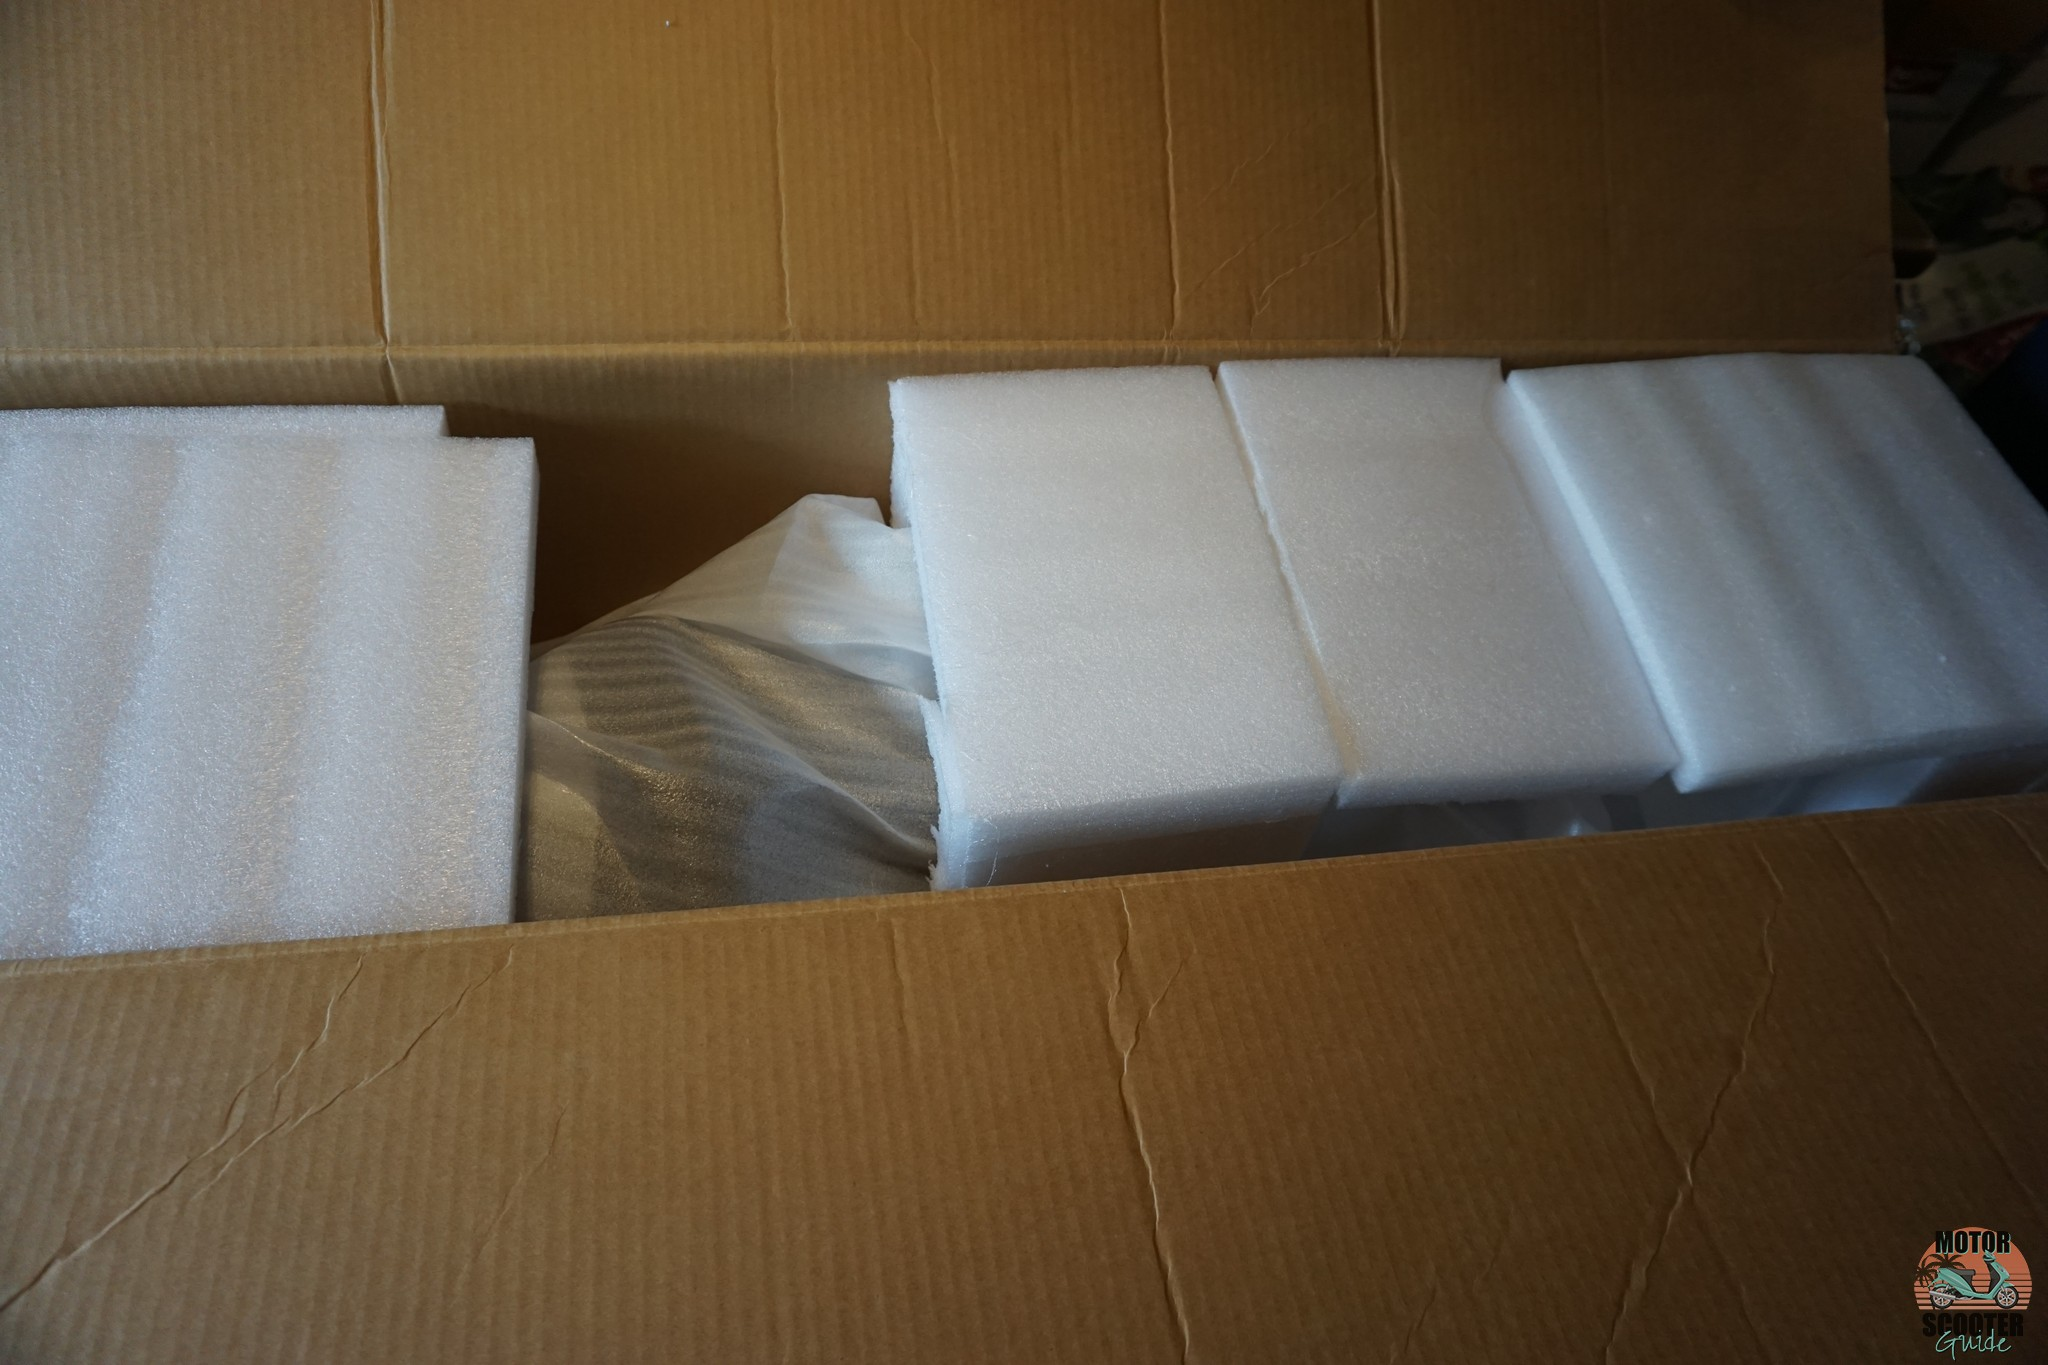 Protective foam packaging inside the top of the Himiway Cruiser shipping box